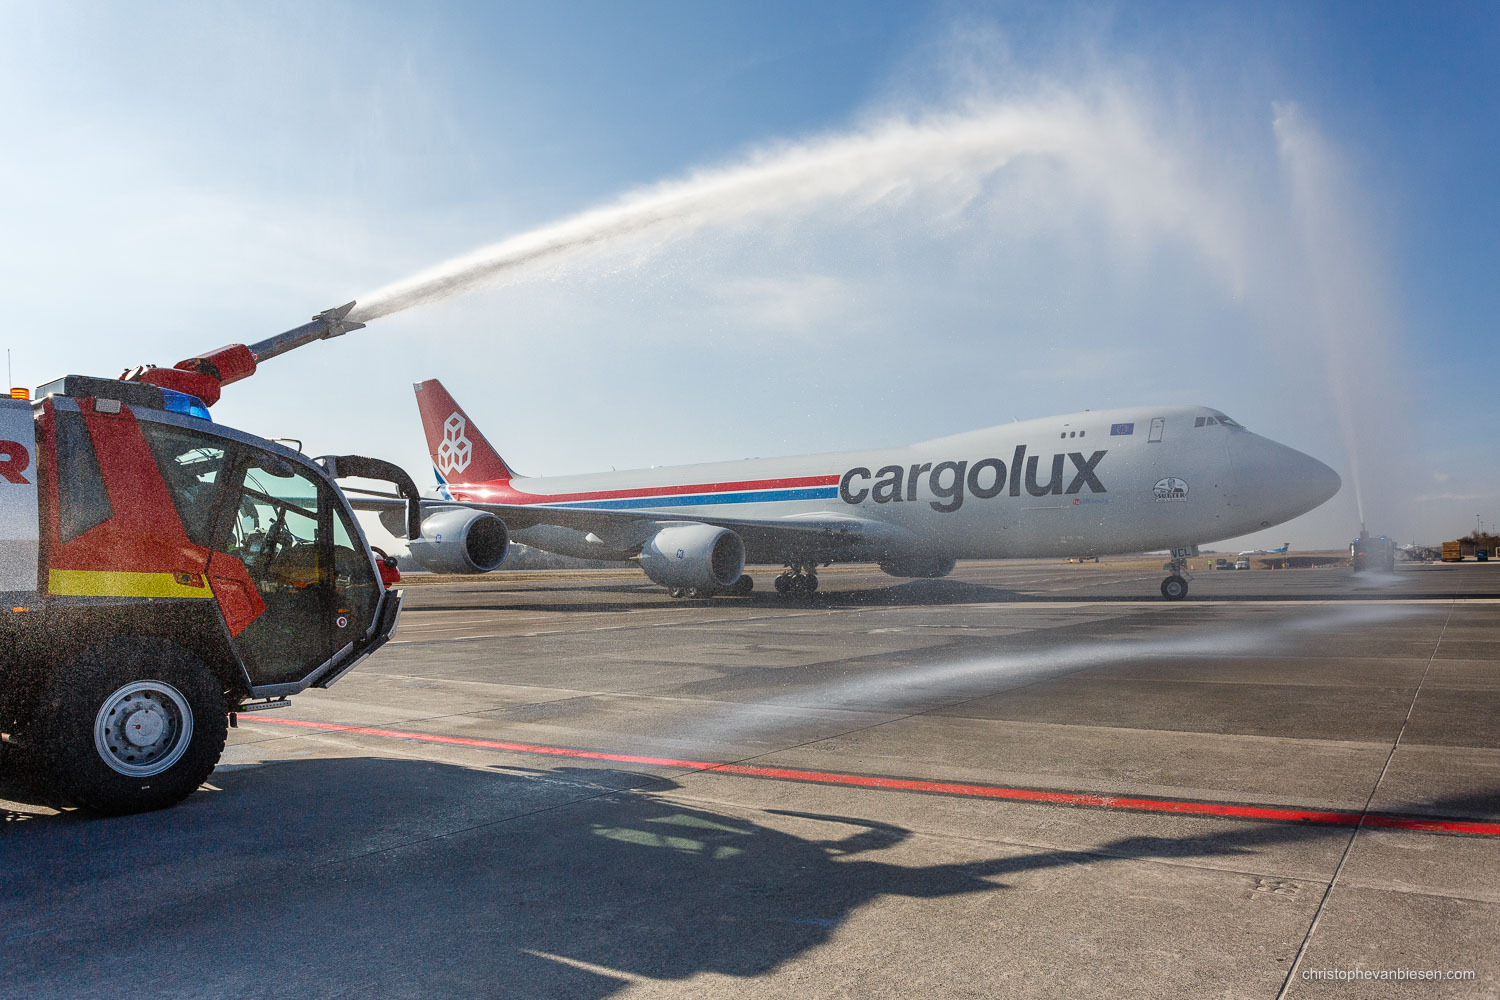 Work with me - Commission Work - Boeing 747 of Luxembourg's Cargolux fleet - Inauguration - Photography by Christophe Van Biesen - Luxembourg Landscape and Travel Photographer